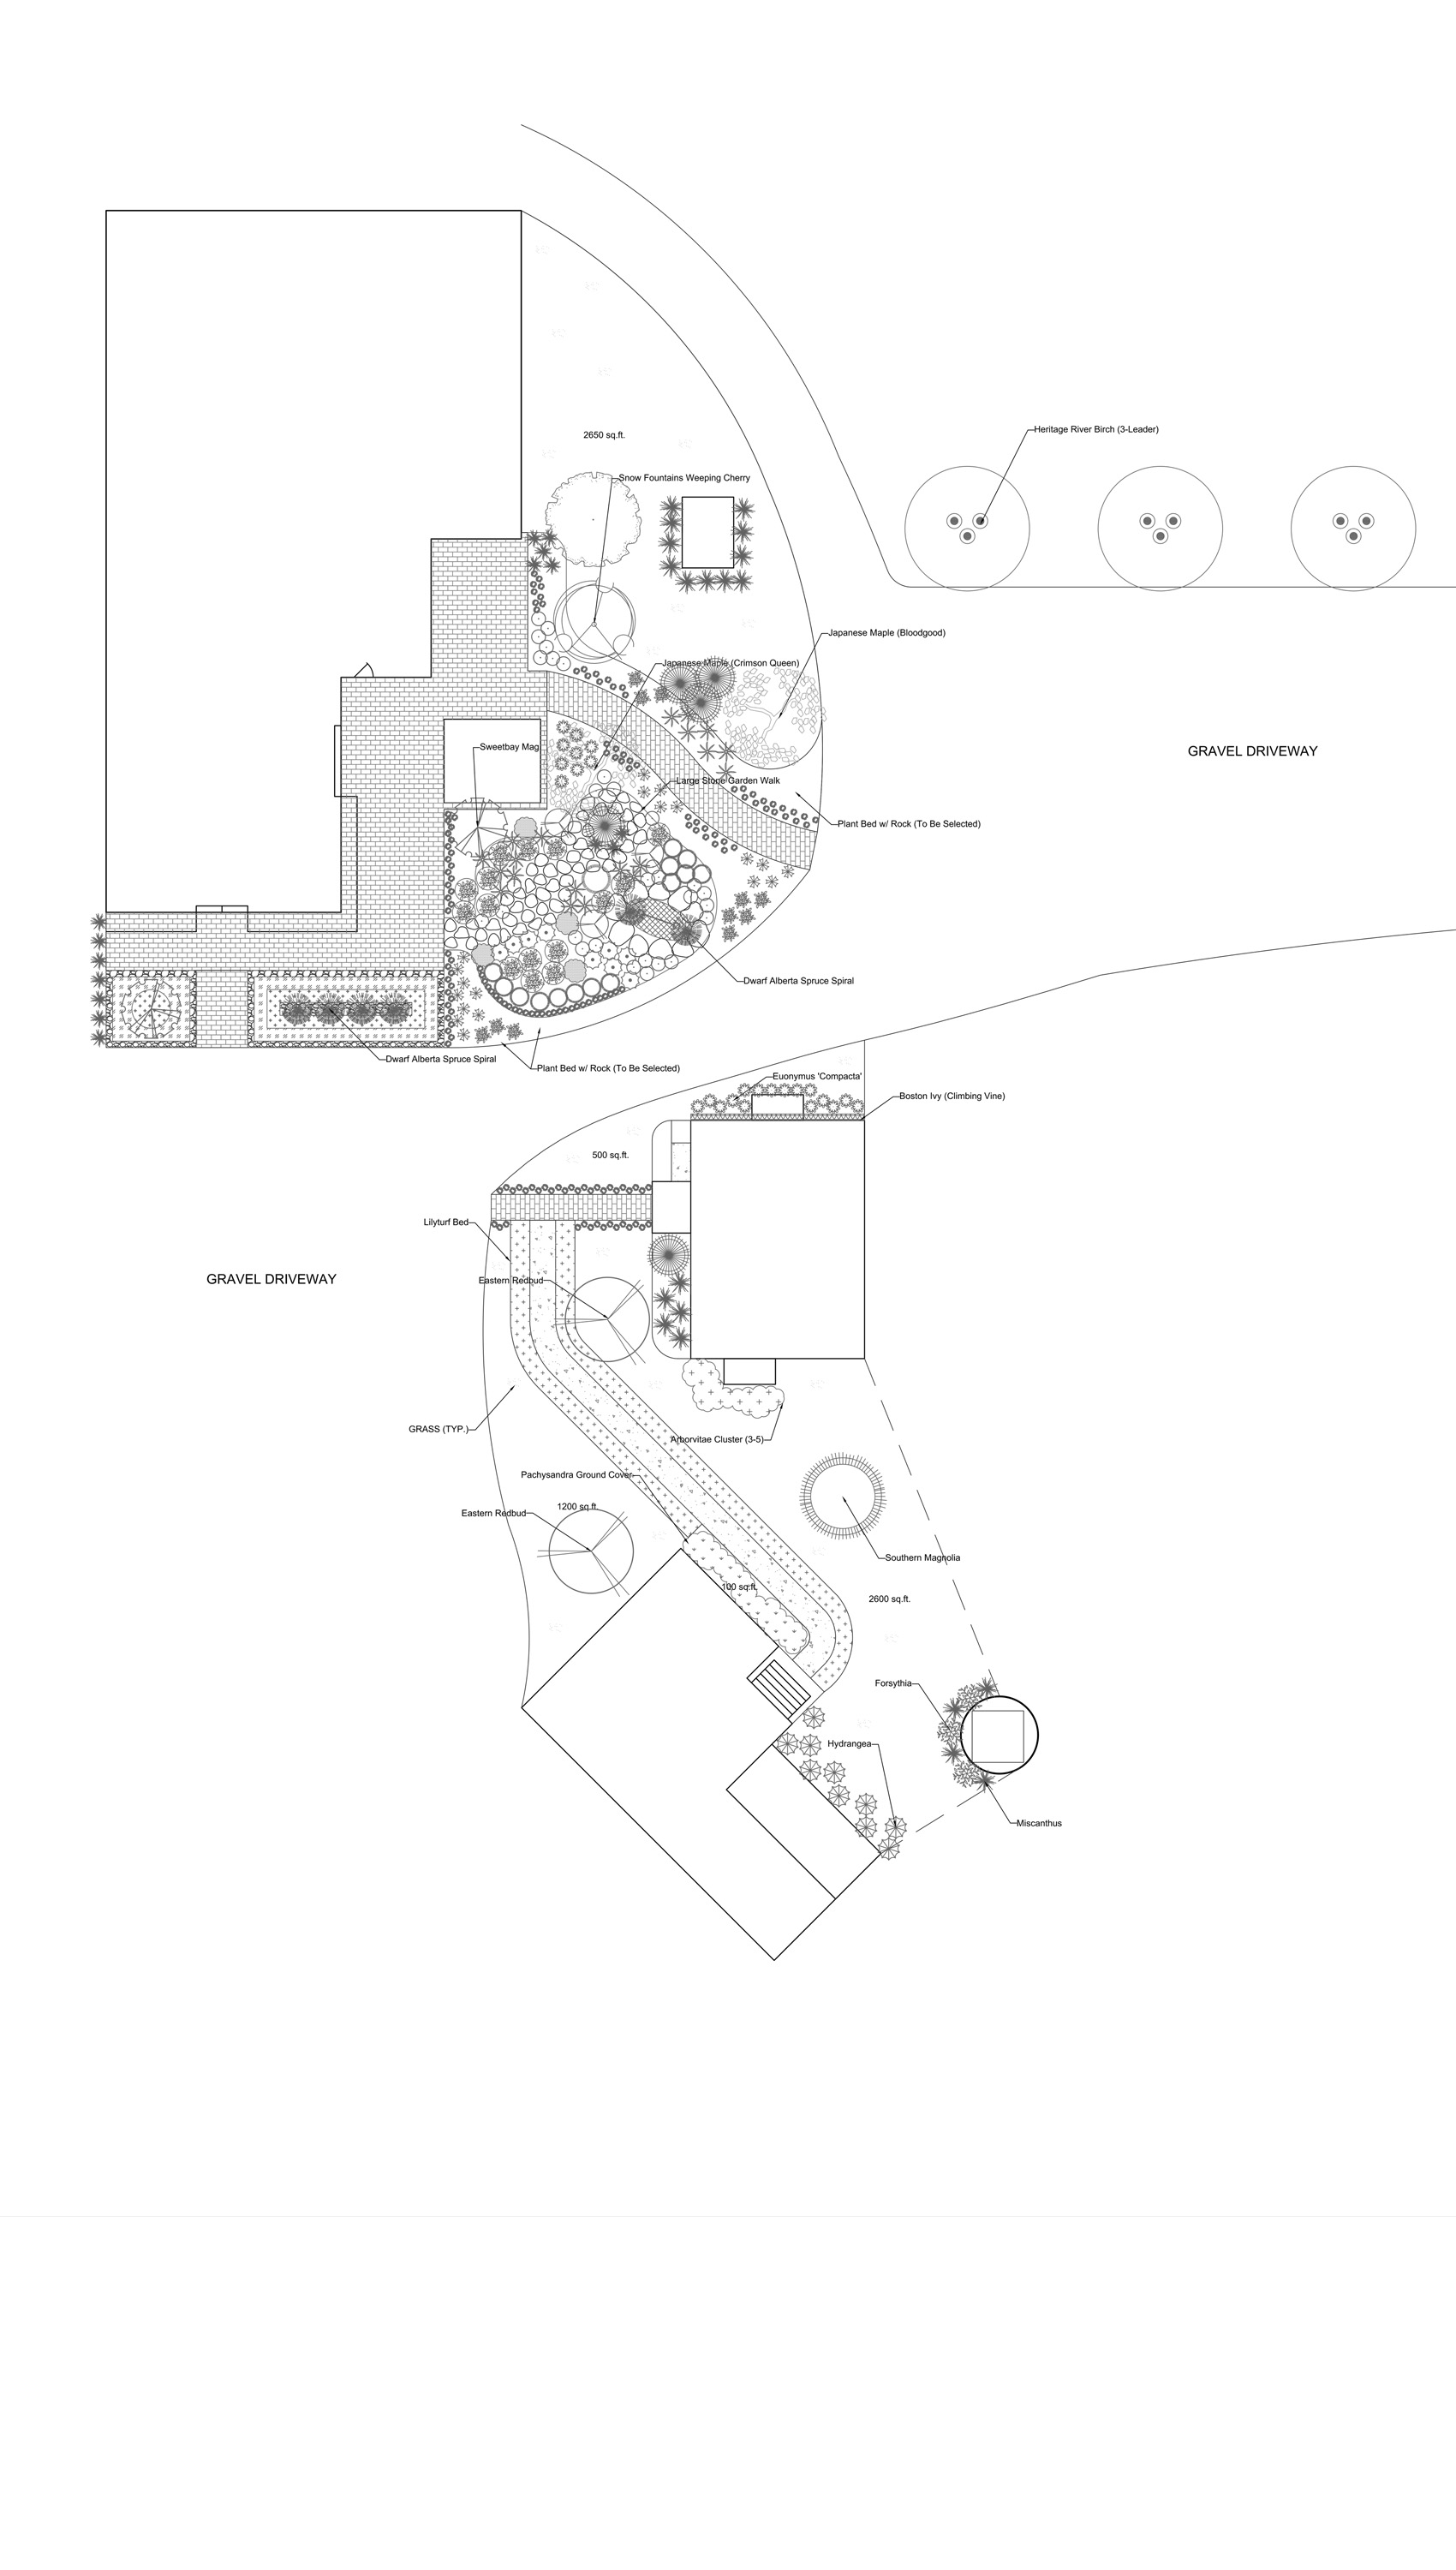 industrial_landscape_architecture_design_planning